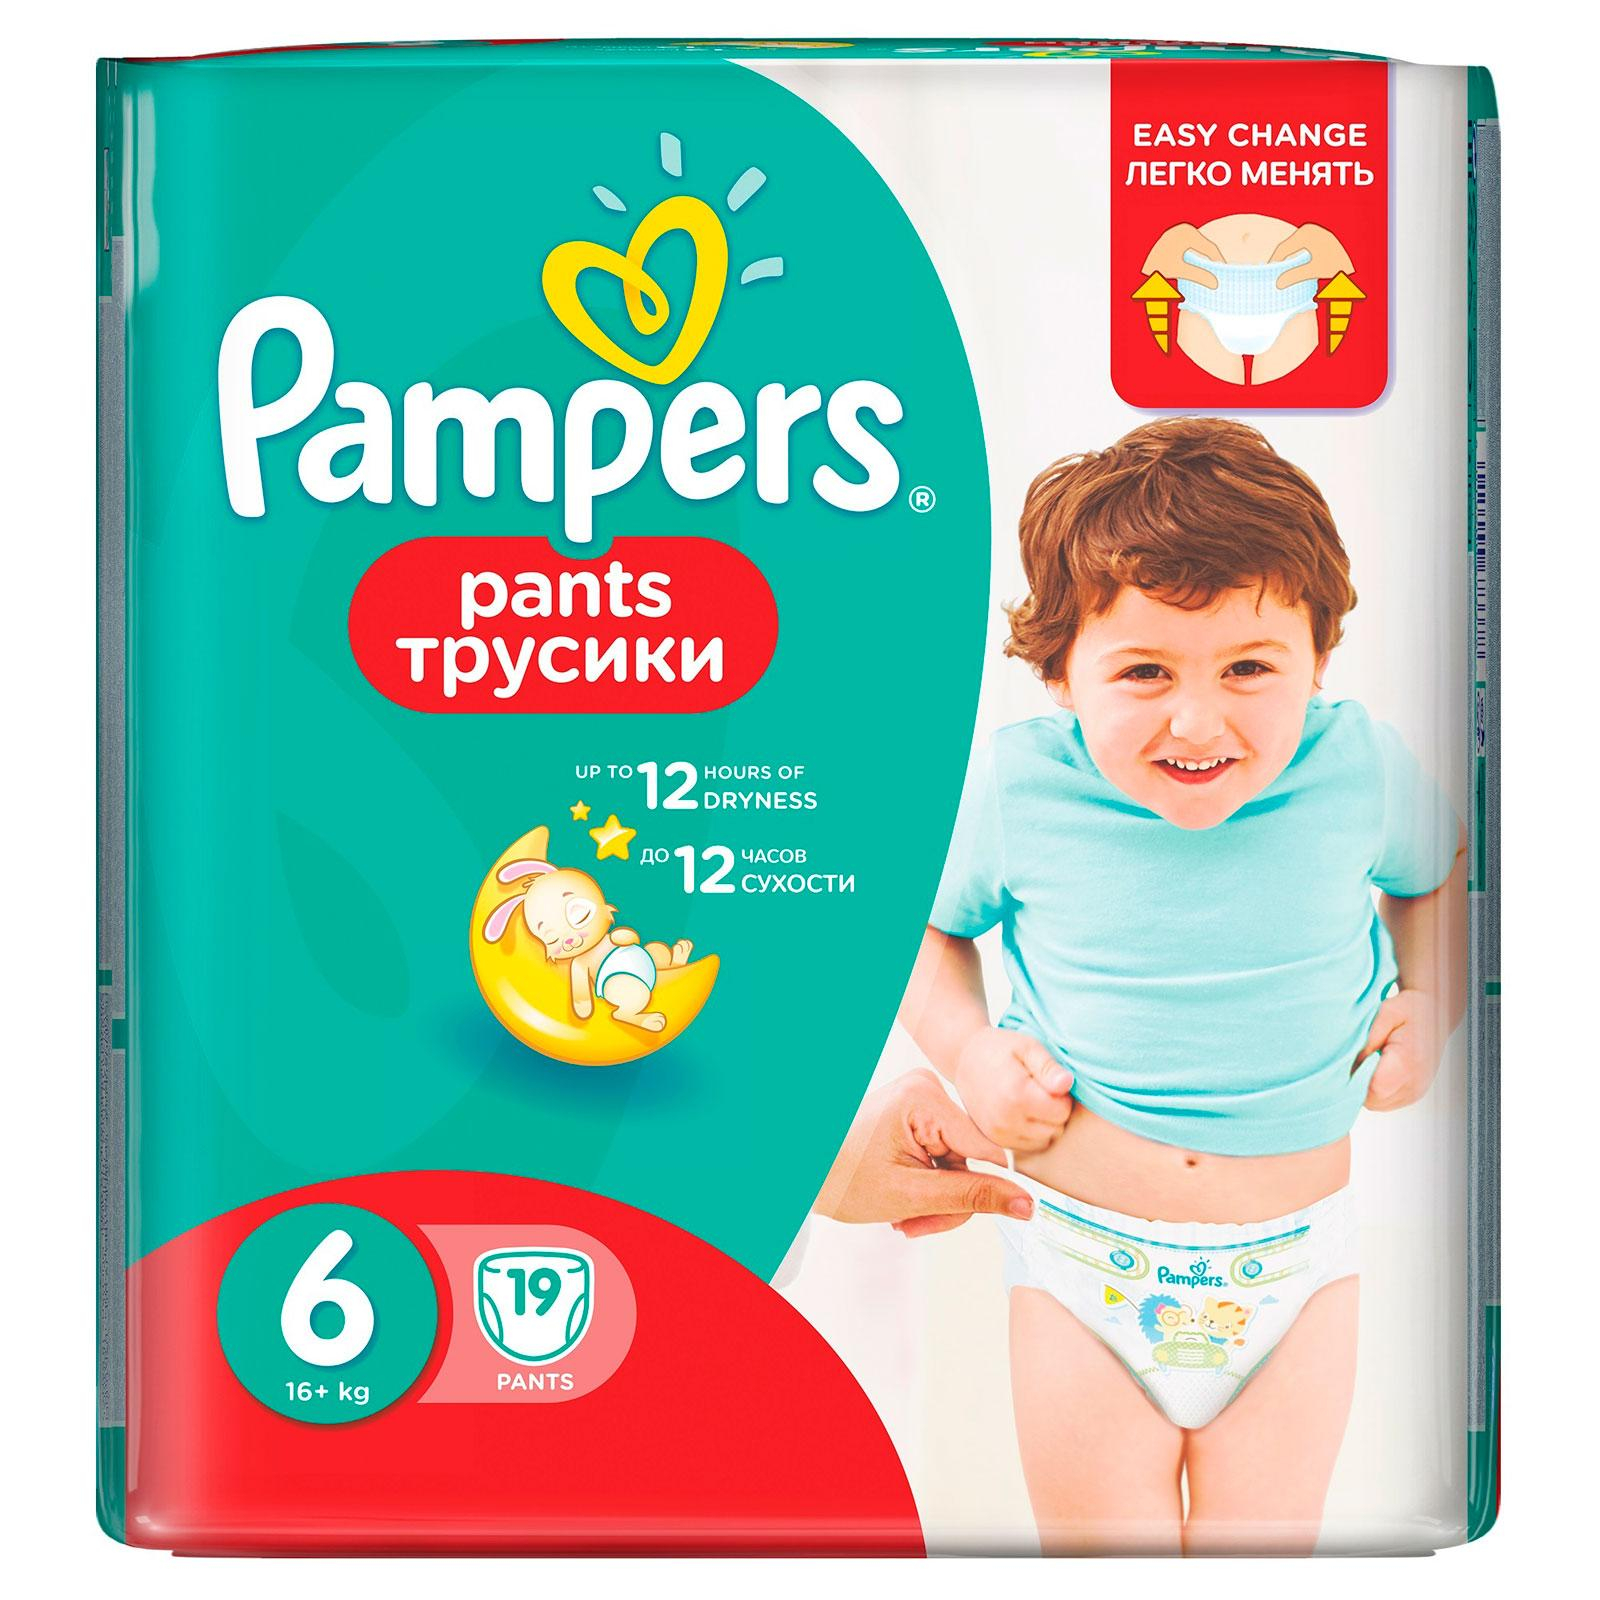 Трусики Pampers Pants Extra Large 16+ кг - 19 шт